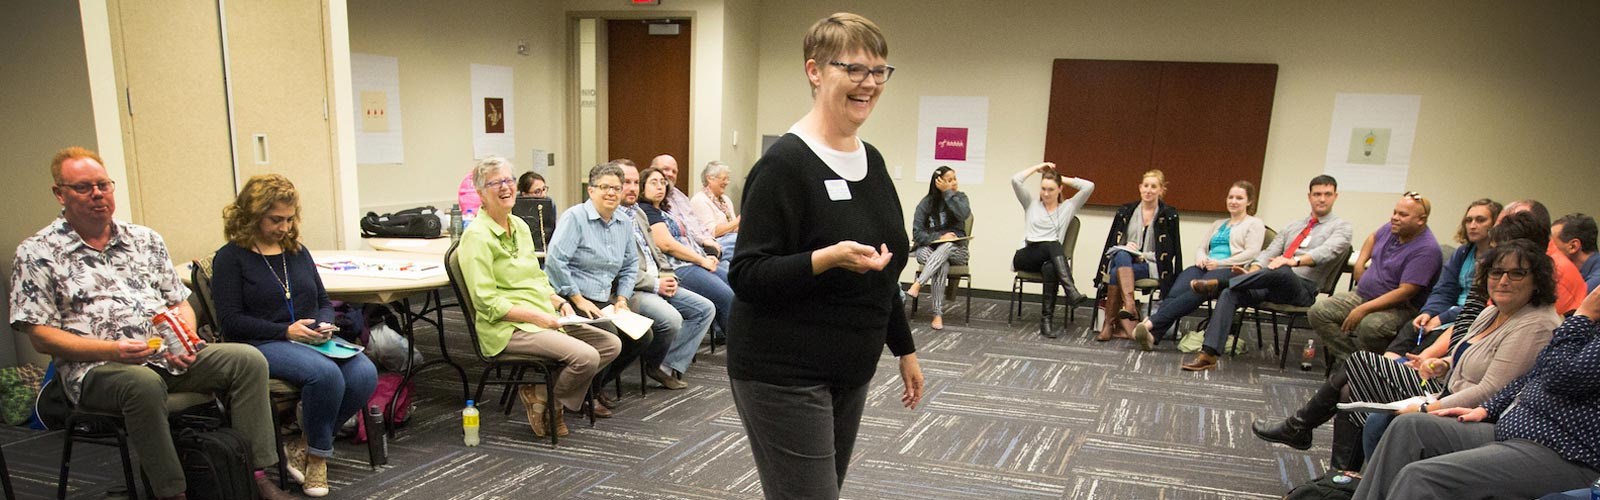 Negotiation and Conflict Resolution at Creighton University